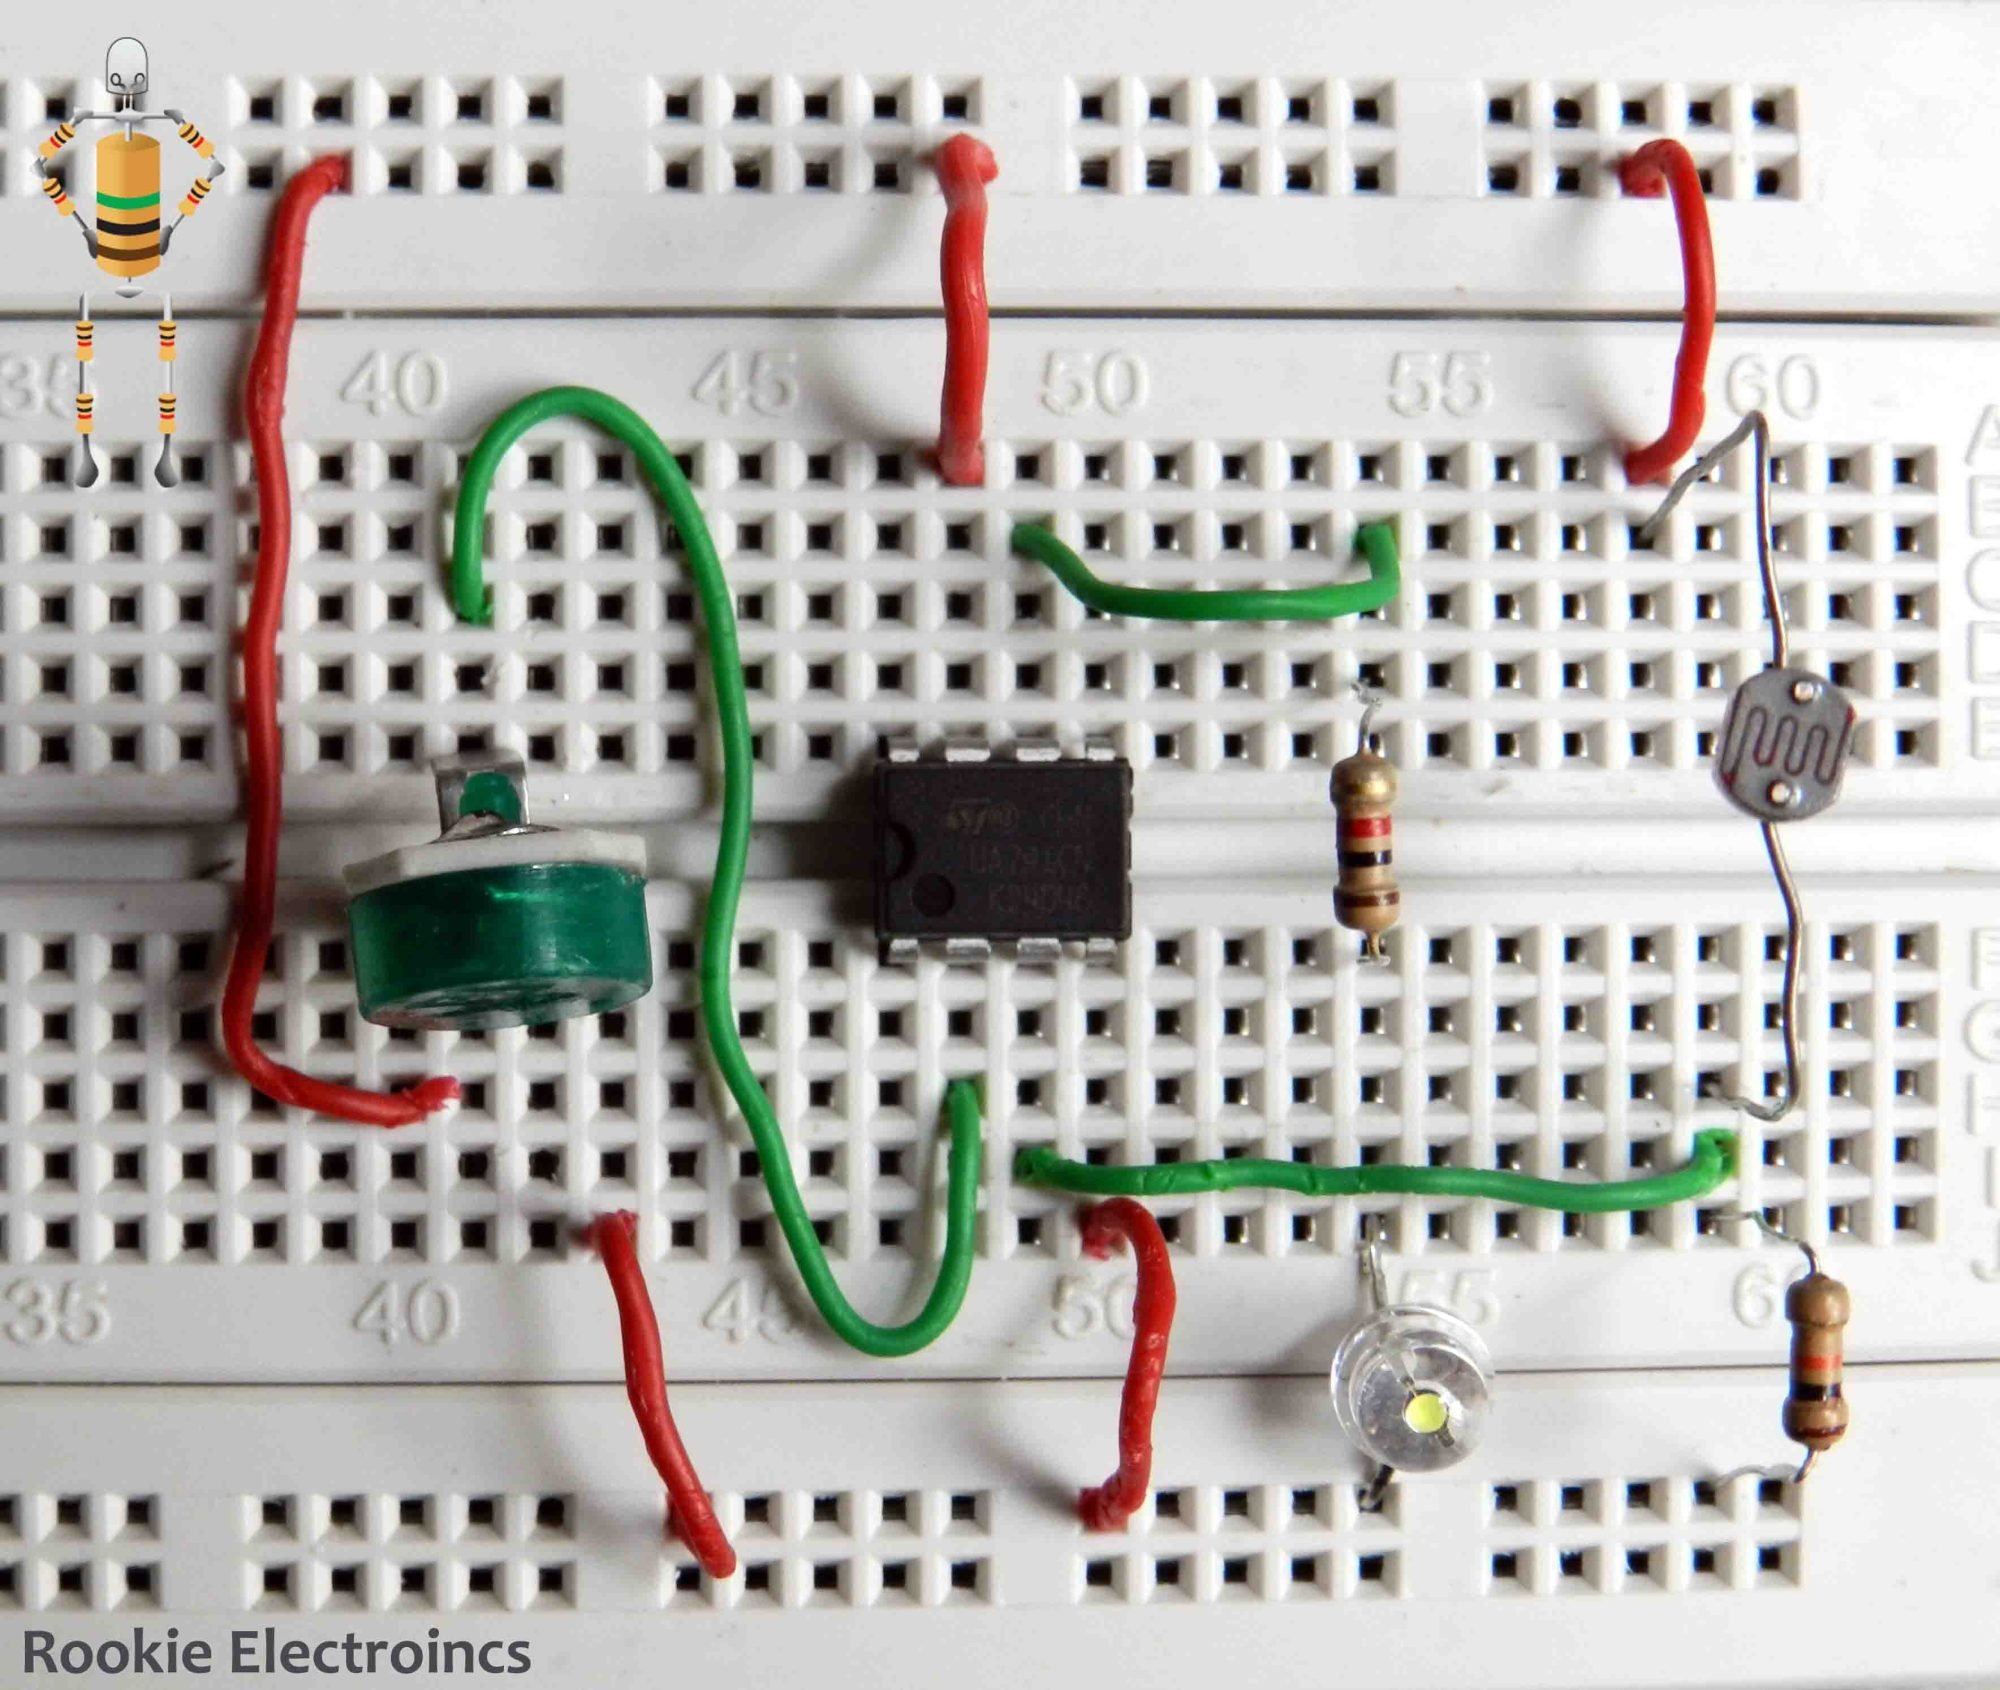 hight resolution of simple light sensor using 741 op amp rookie electronics electronics robotics projects